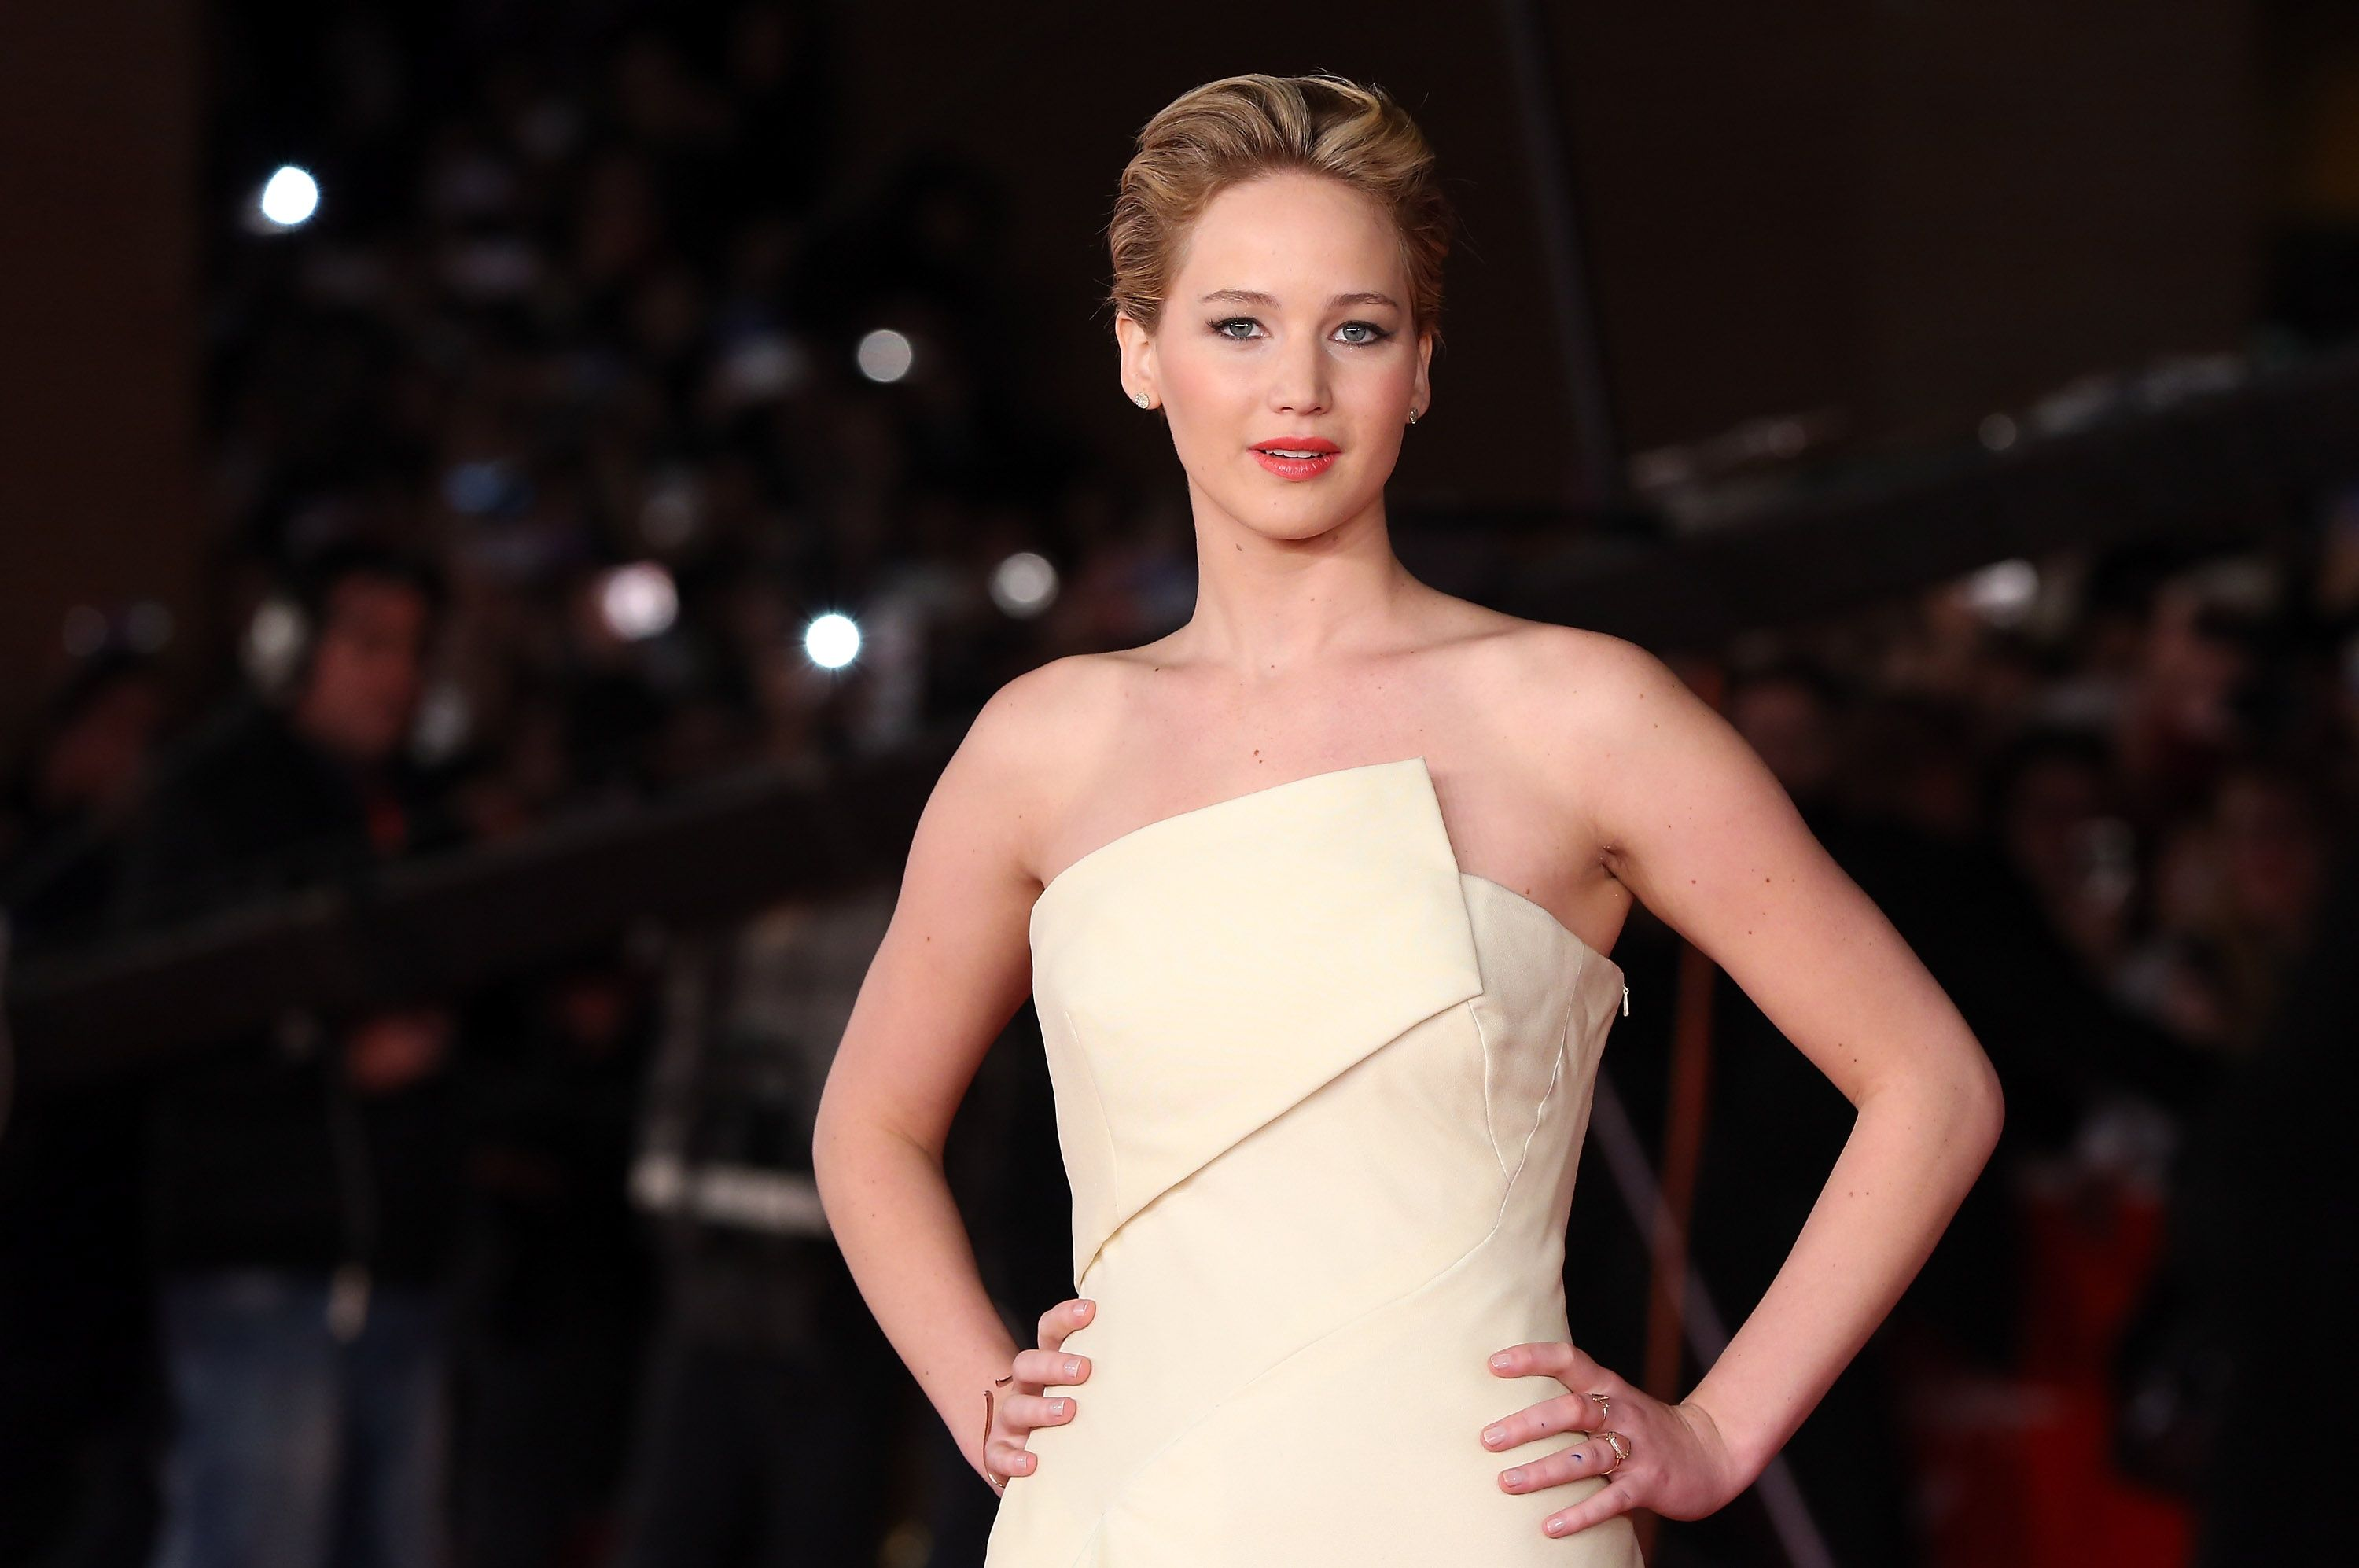 Alison Victoria Naked j.law, kate upton, ariana grande among over 100 celebrities